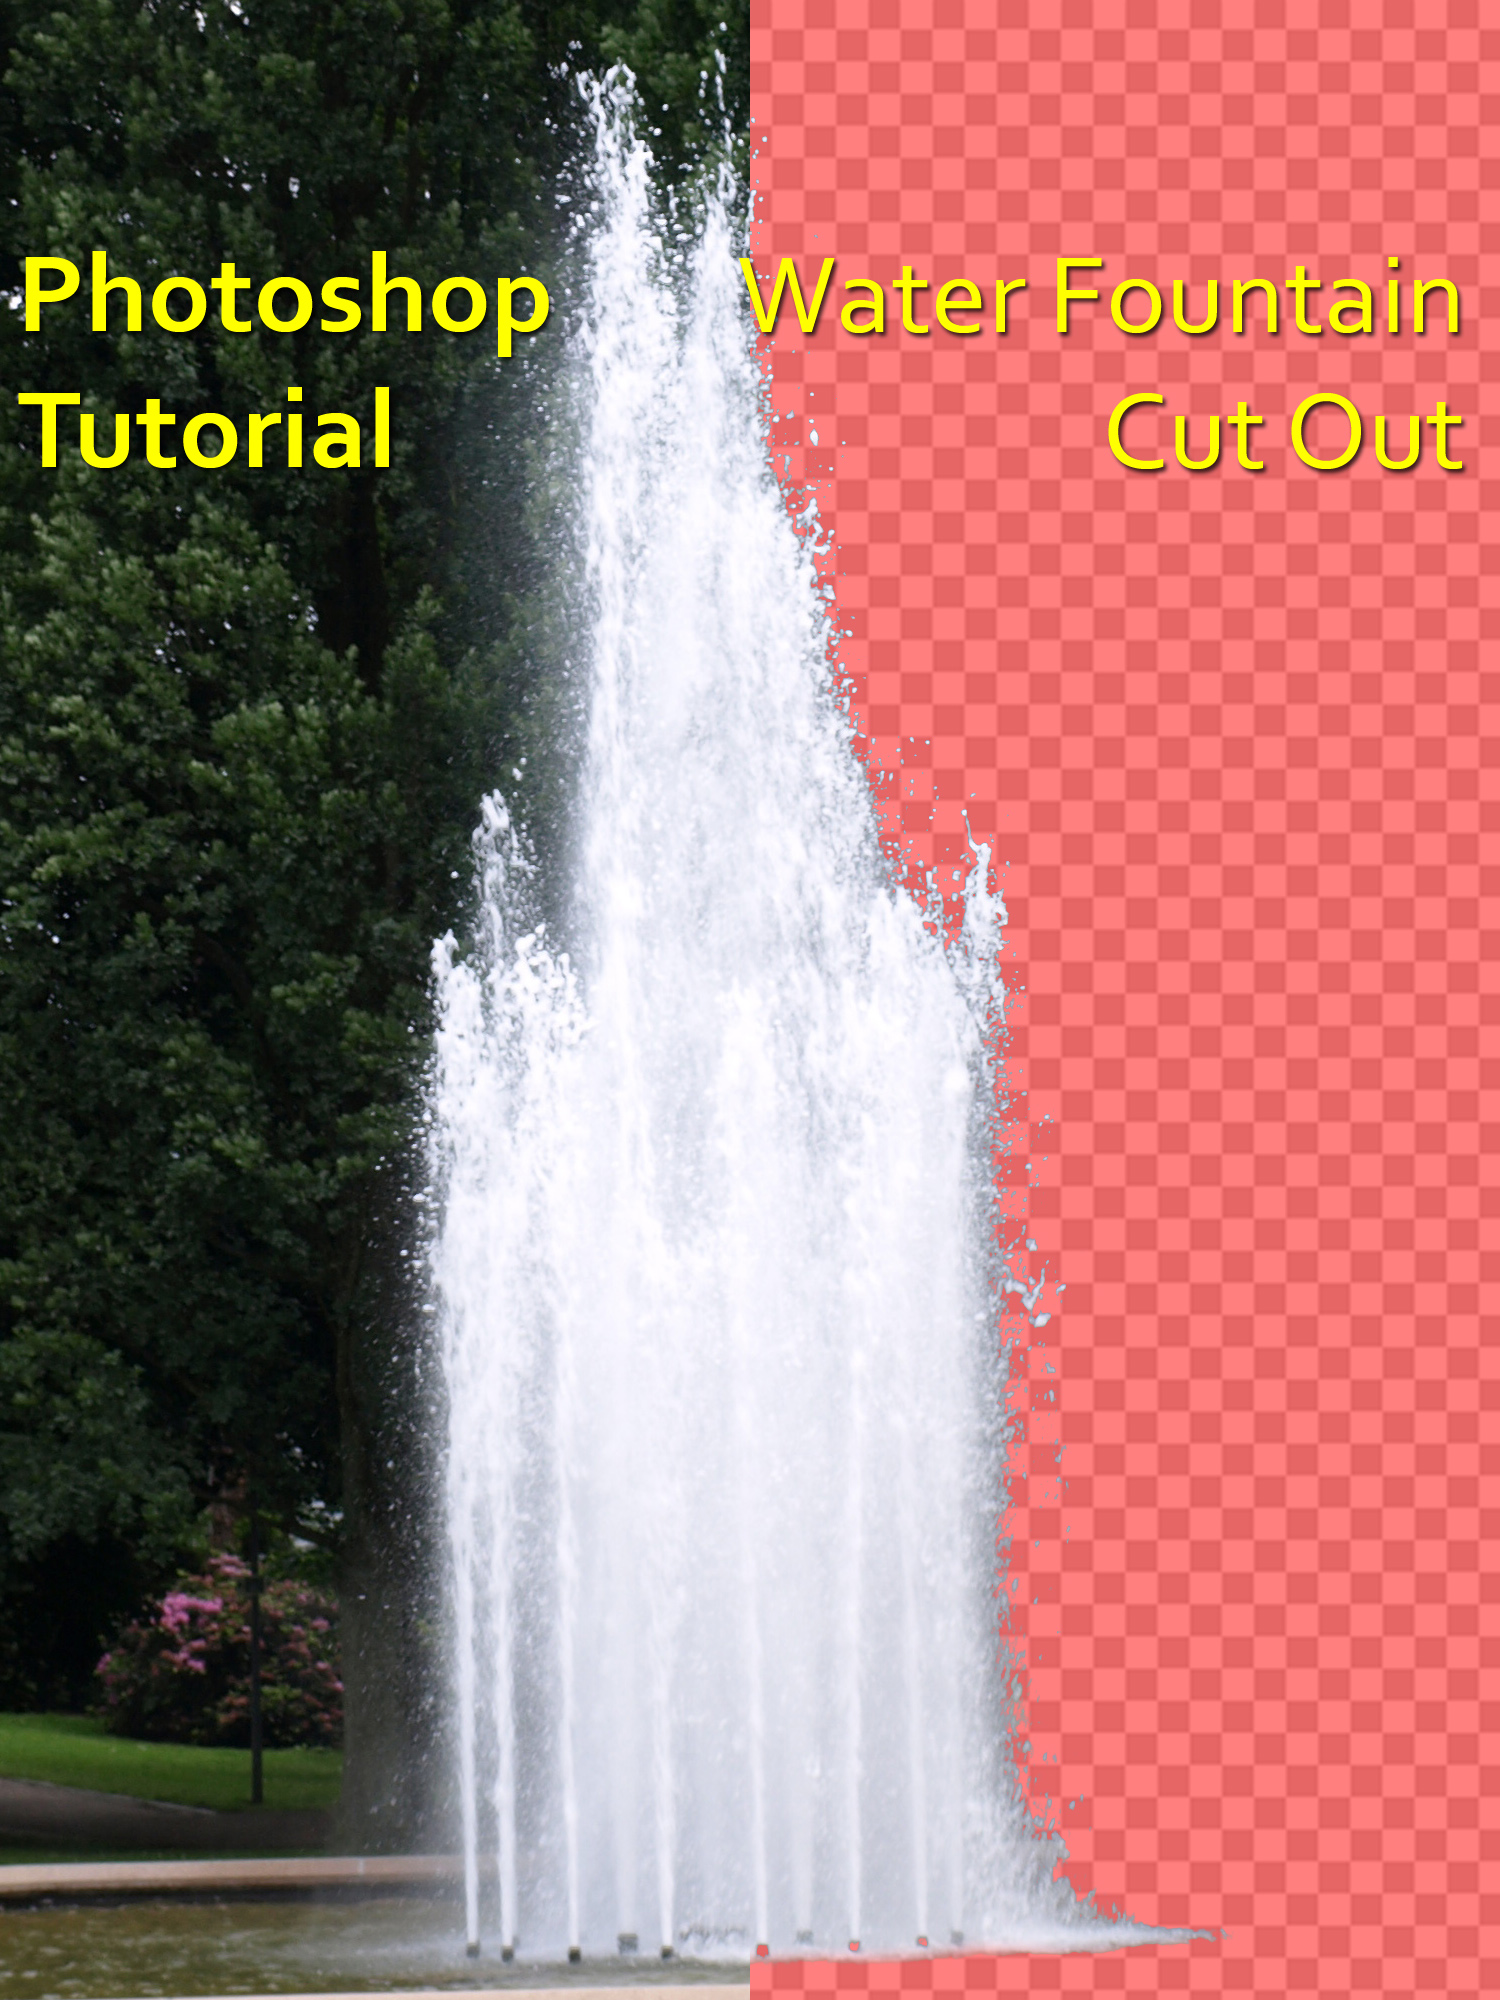 Revolution how to get hm01 cut pokemon revolution move relearner - Water Fountains Dirty How To Cut Out A Water Fountain In Adobe Photoshop